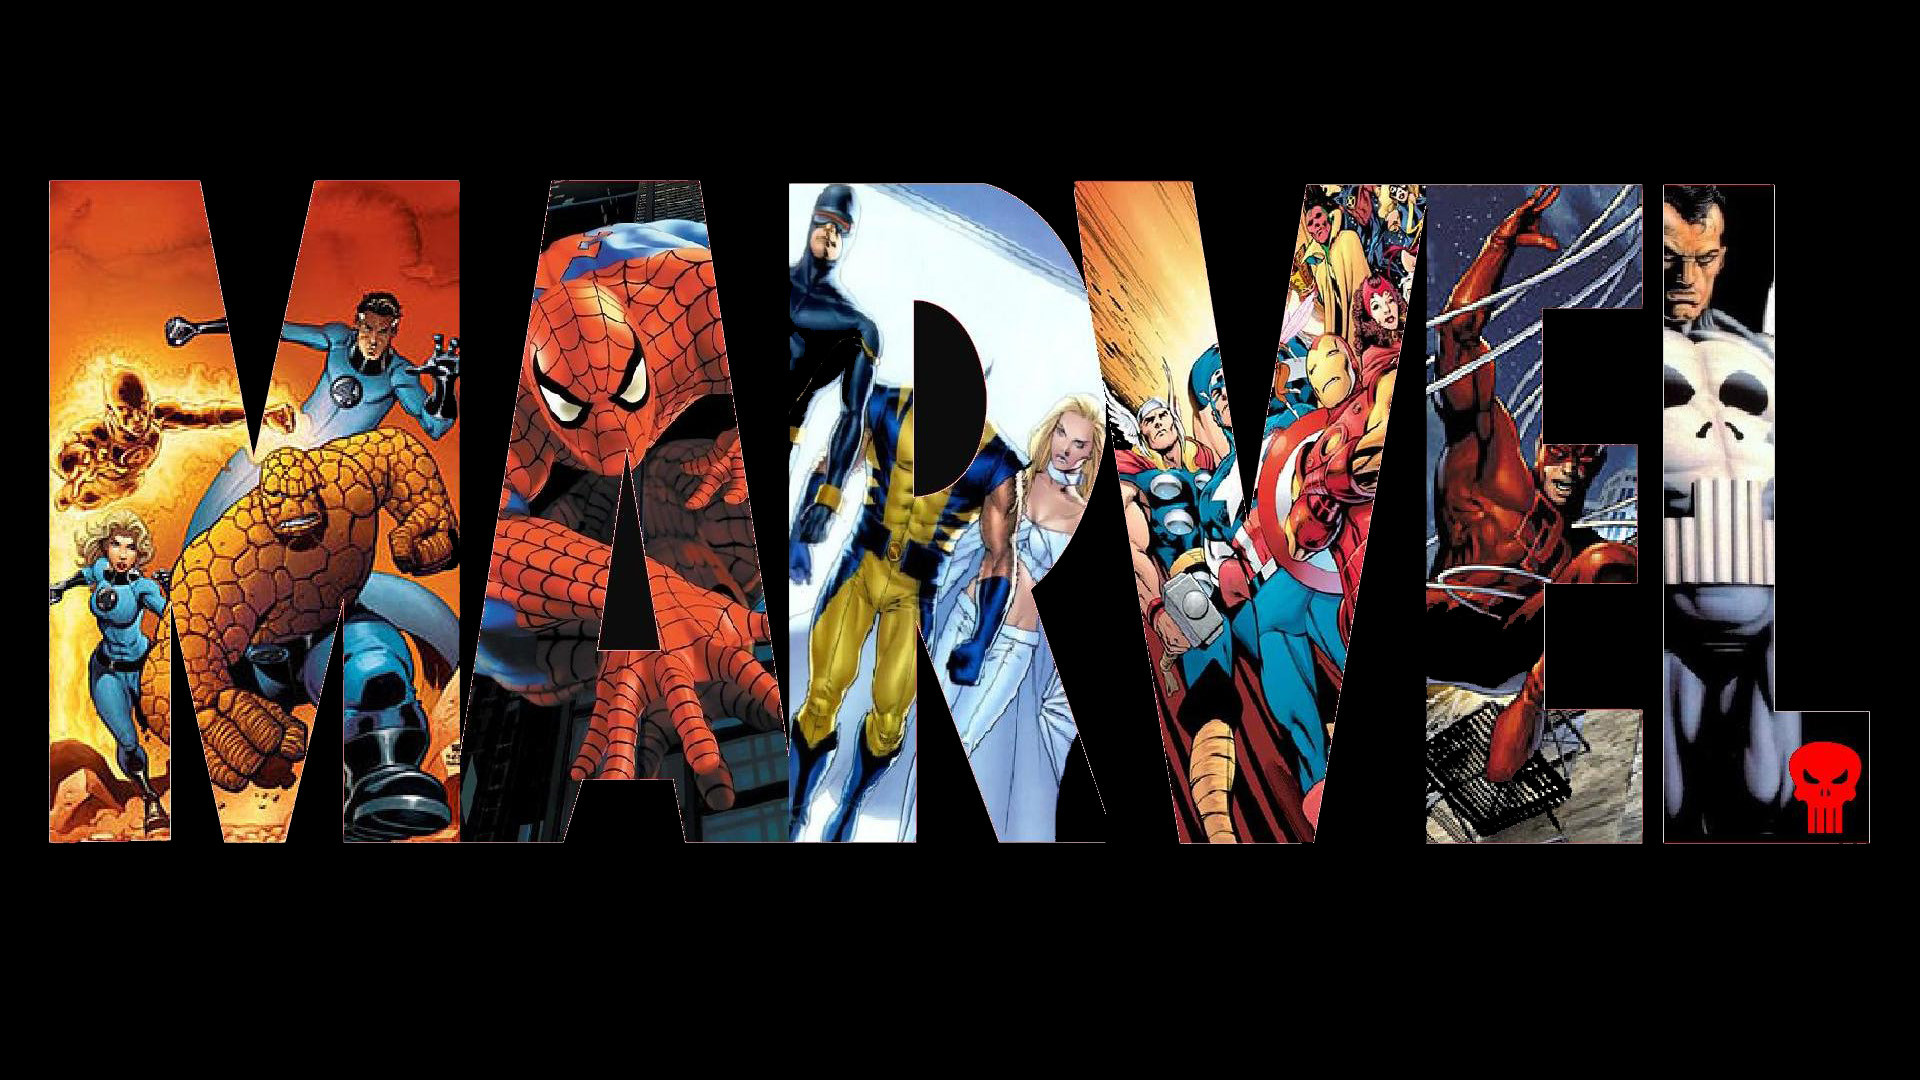 1920x1080 Image: Wallpaper-Marvel-RKT81.jpg